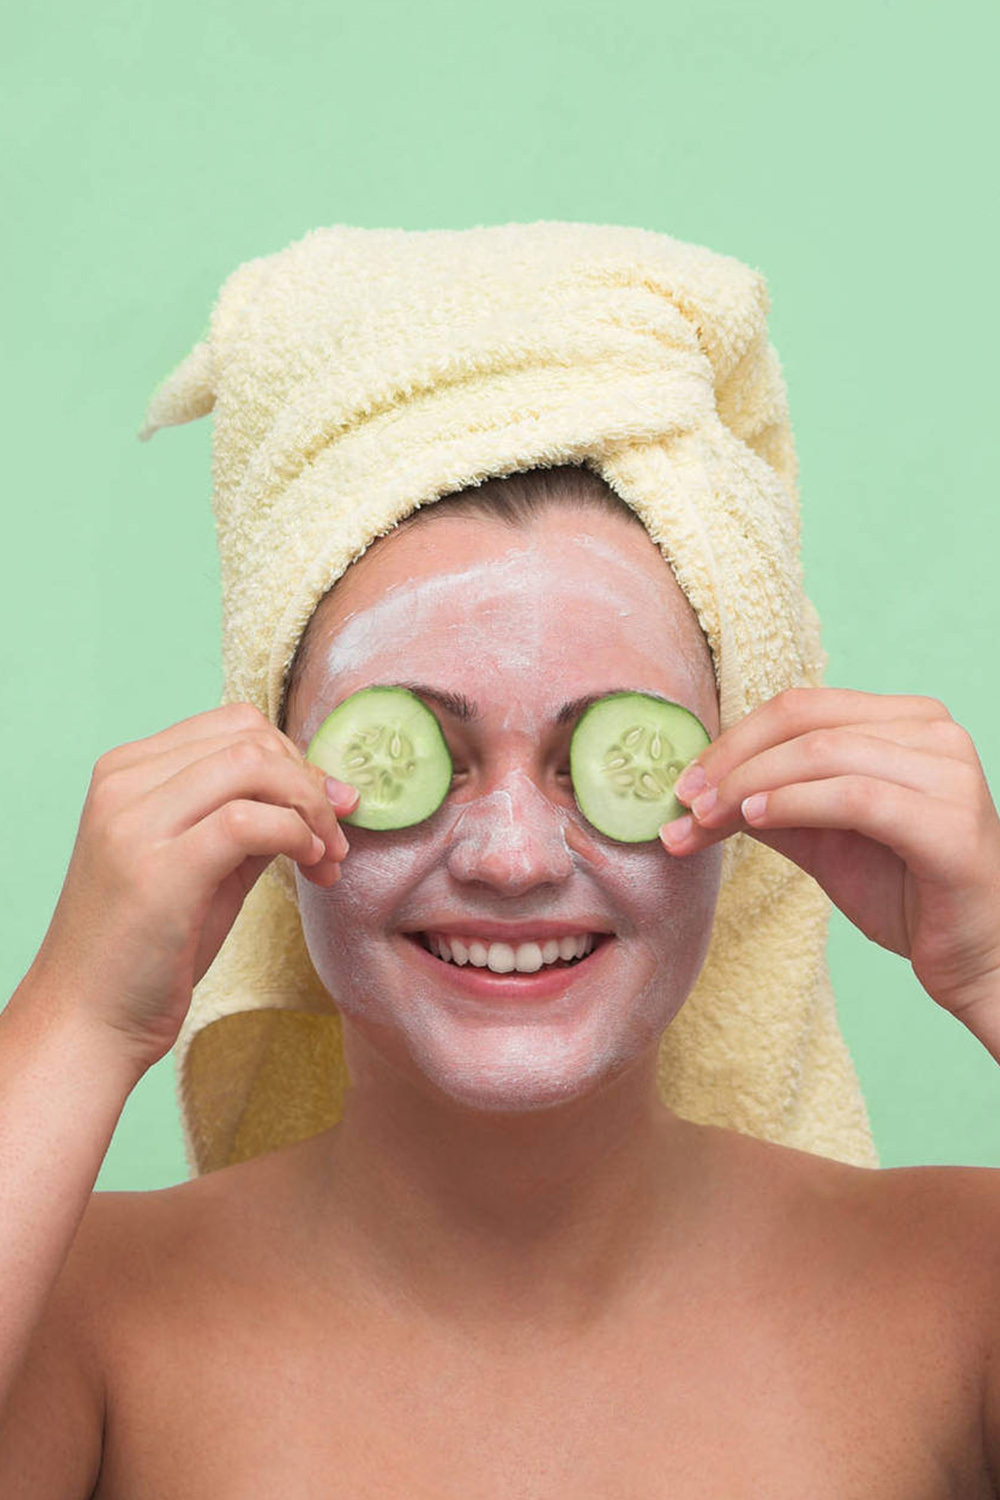 Little Diva Facial - $65An introduction to caring for the skin for ages 12-17, the Little Diva Facial features a cleansing, steam & extraction, a customized mask, and a tutorial on skin health and products.